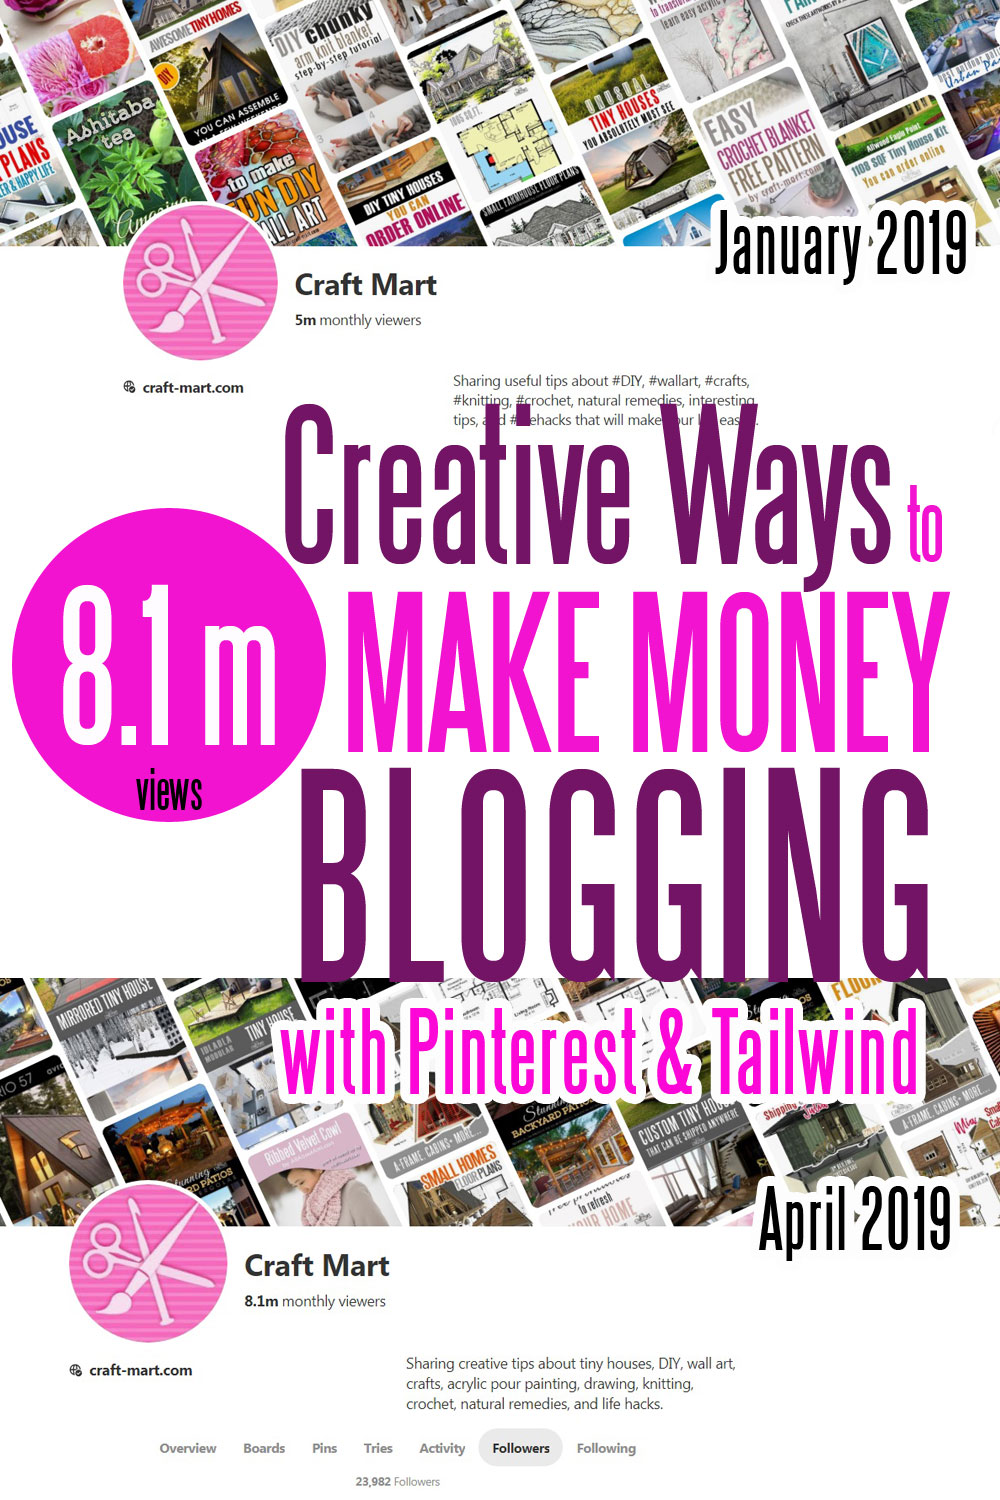 creative ways to make money online using Pinterest and Tailwind